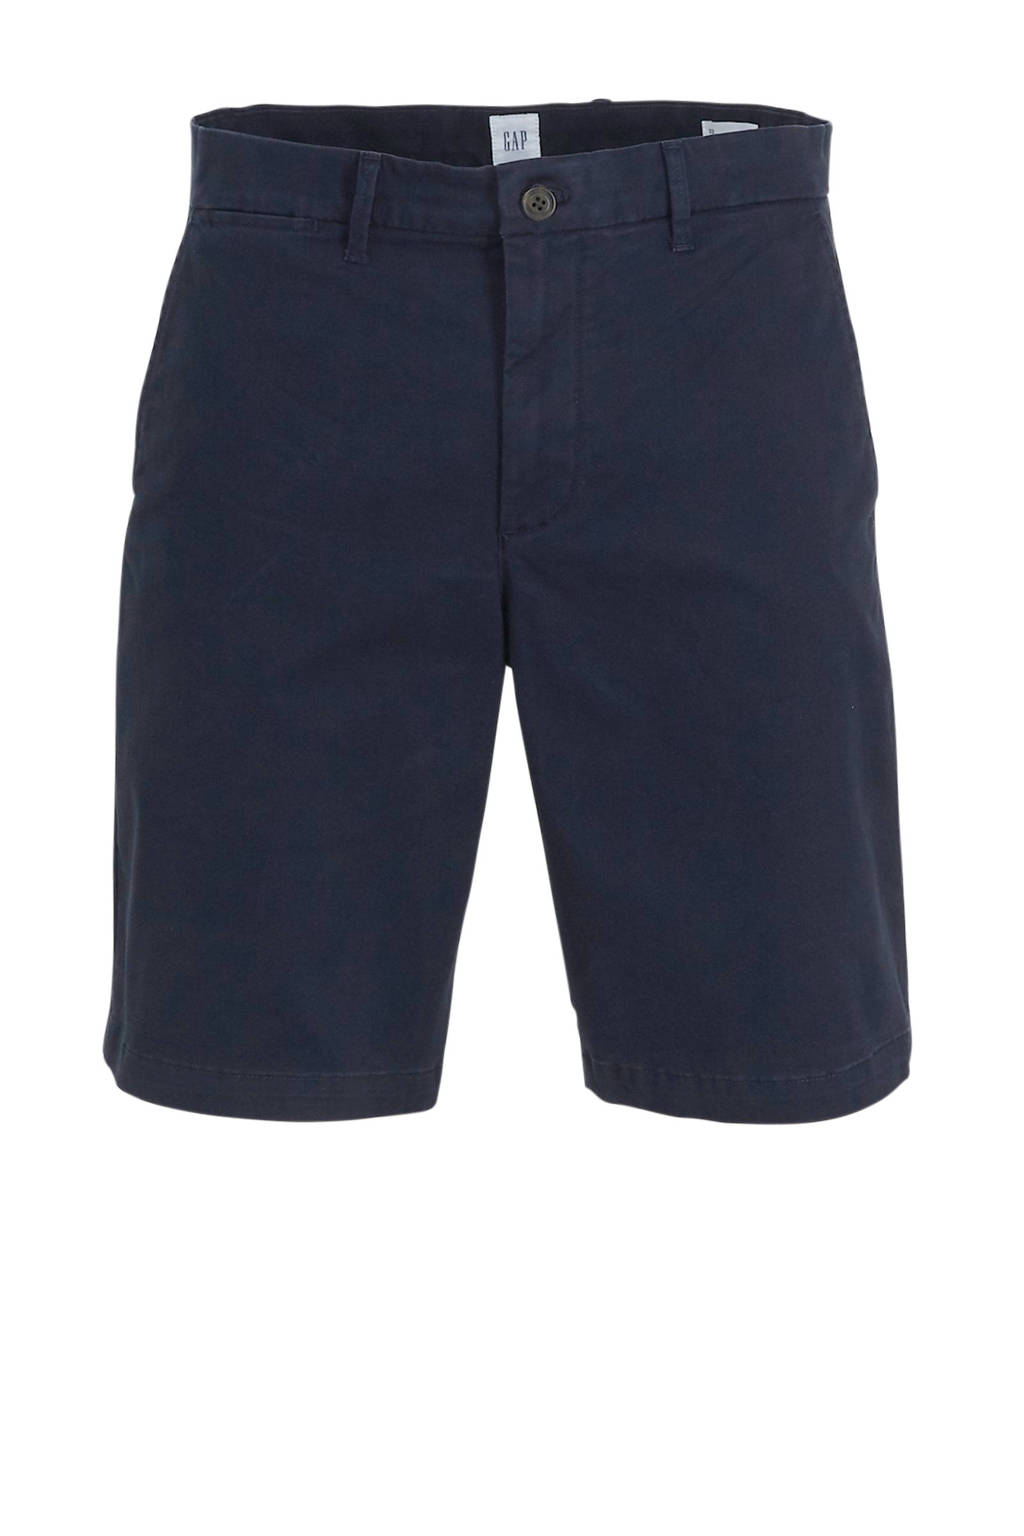 GAP regular fit bermuda donkerblauw, Donkerblauw